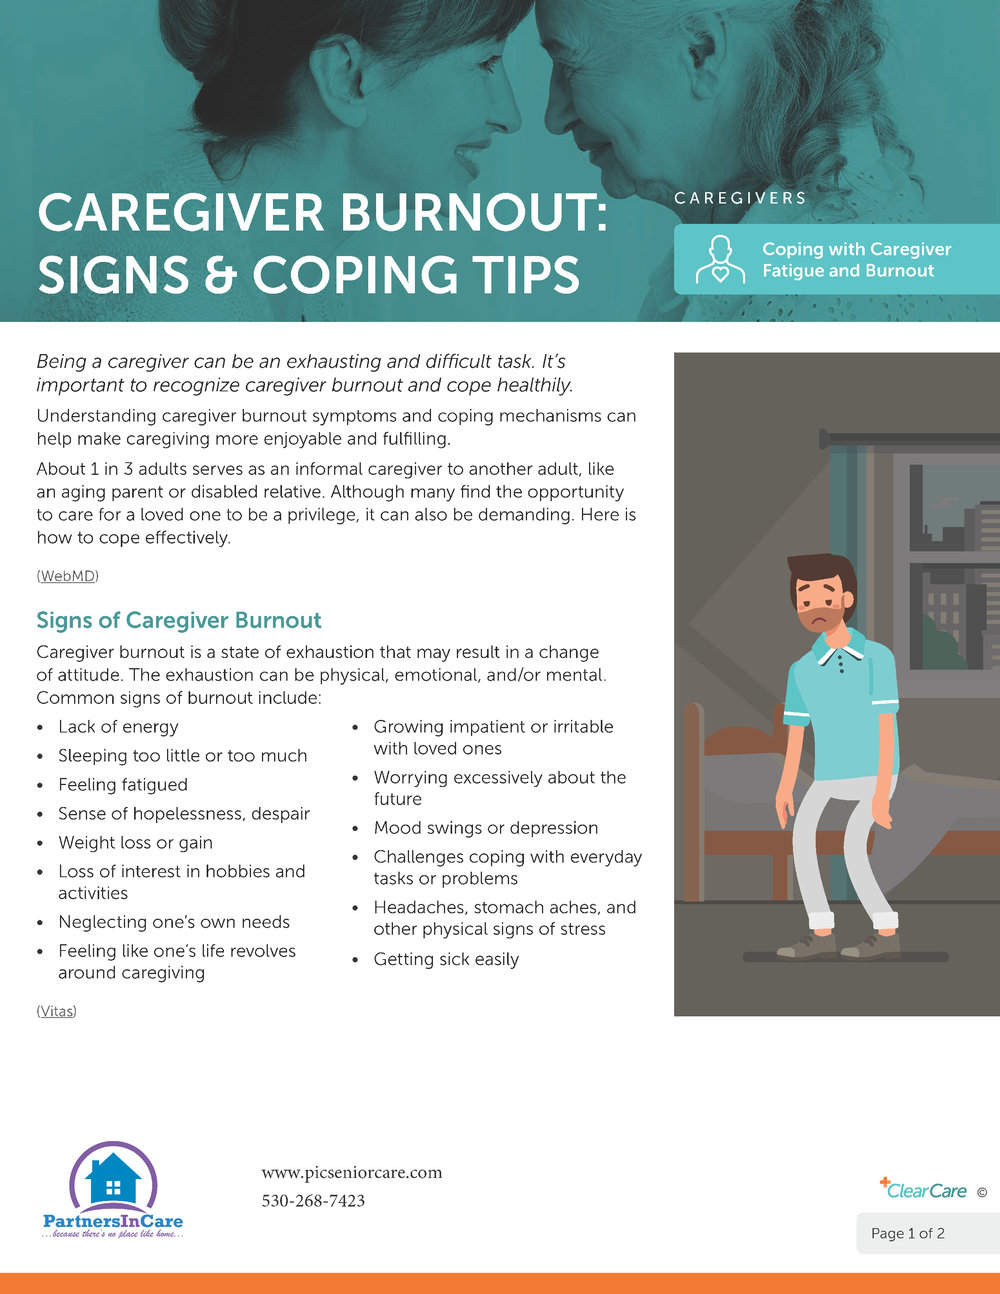 Caregiver Burnout: Signs & Coping Tips page 1